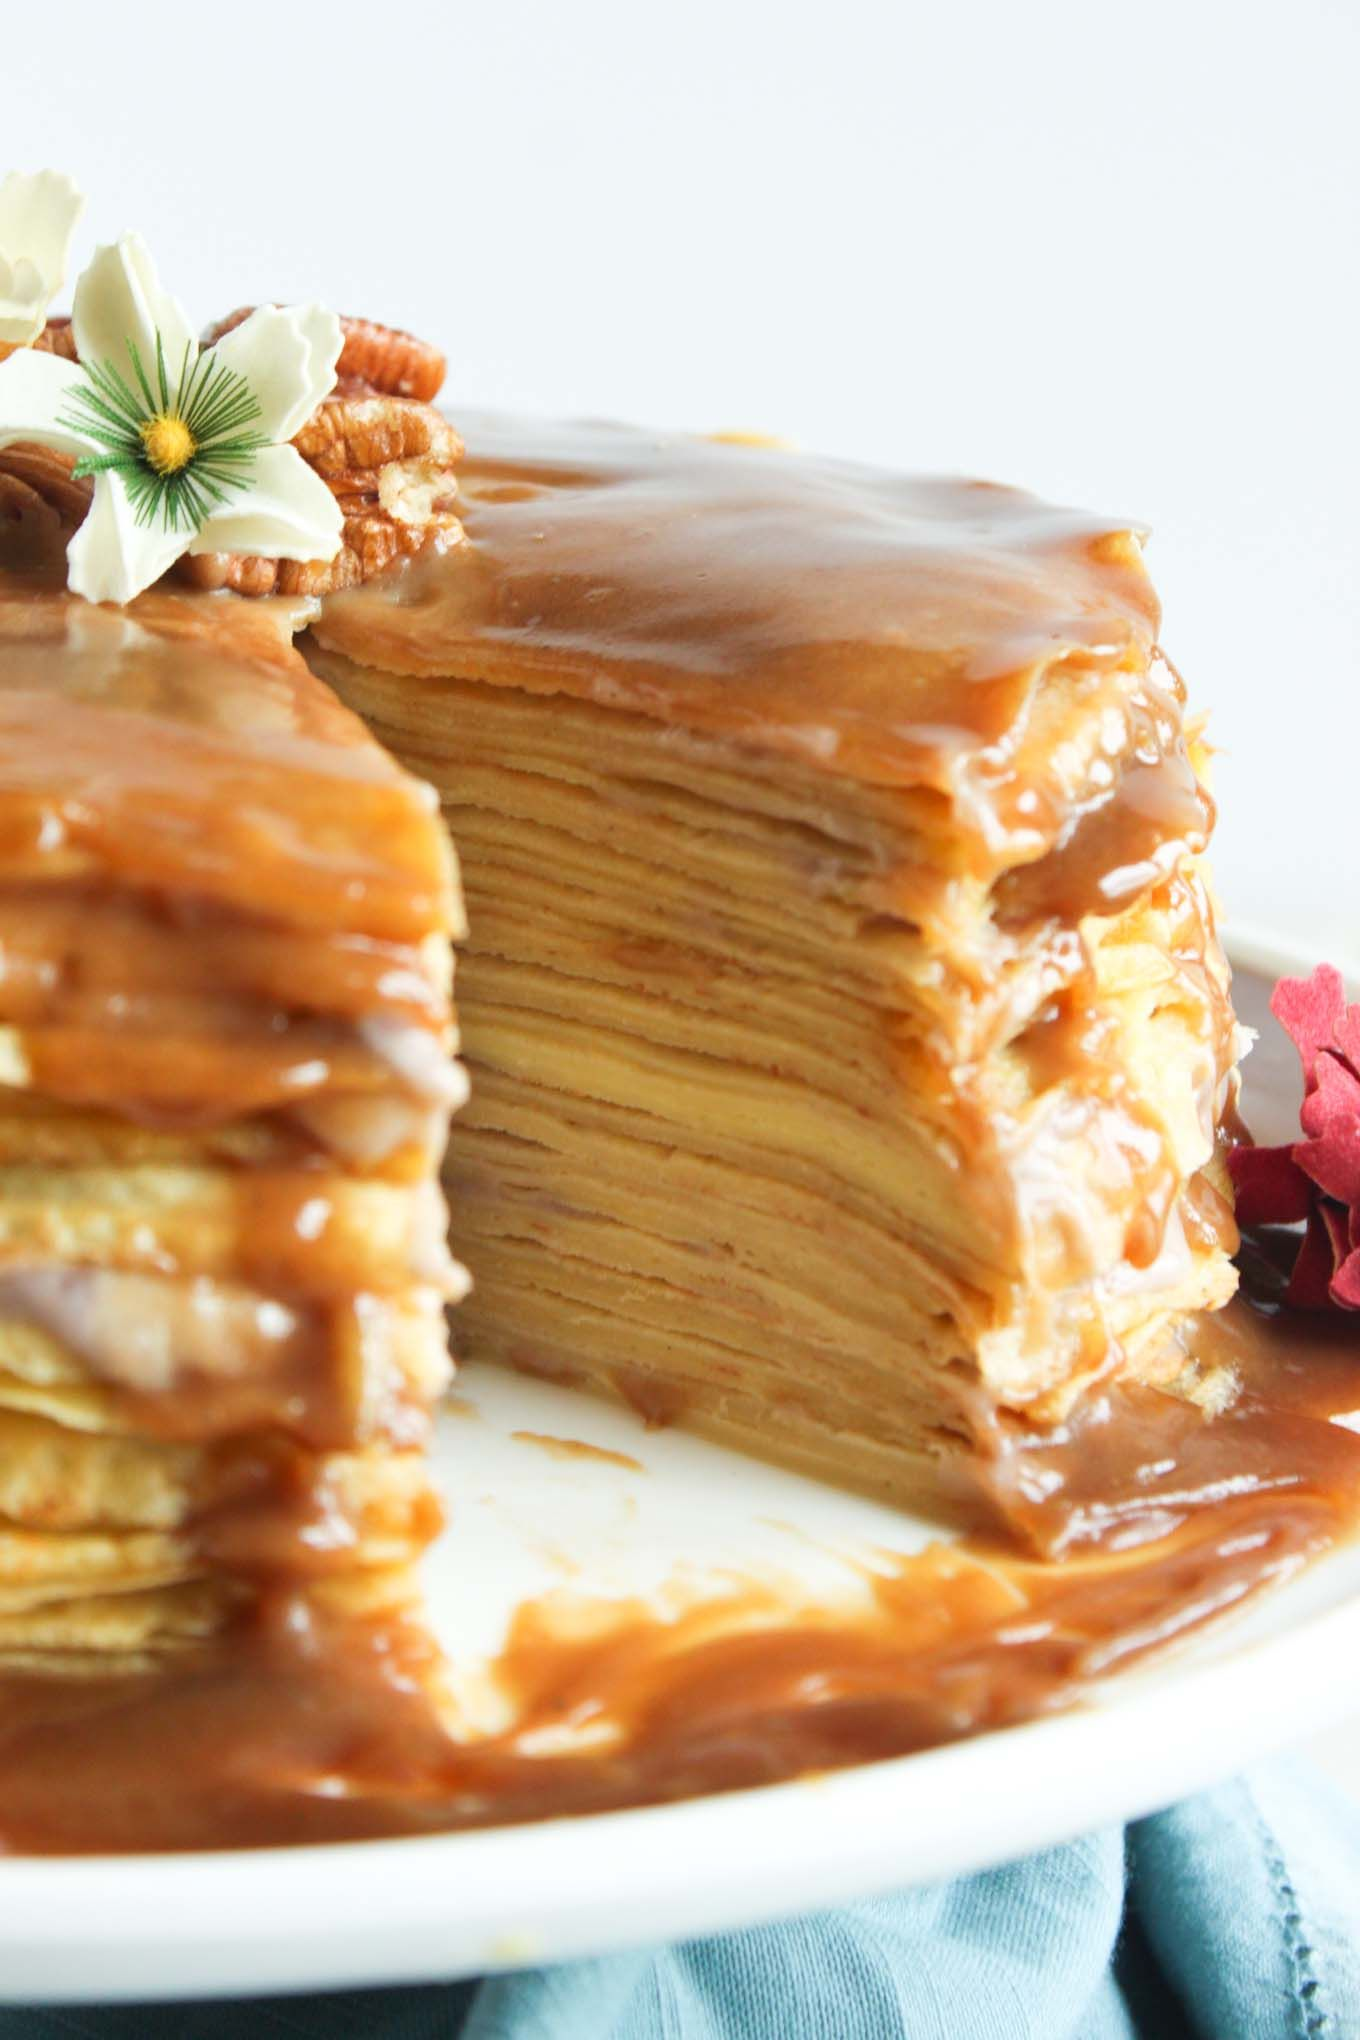 Watch Mascarpone Cheesecake with Bananas and Butterscotch Sauce Recipe video